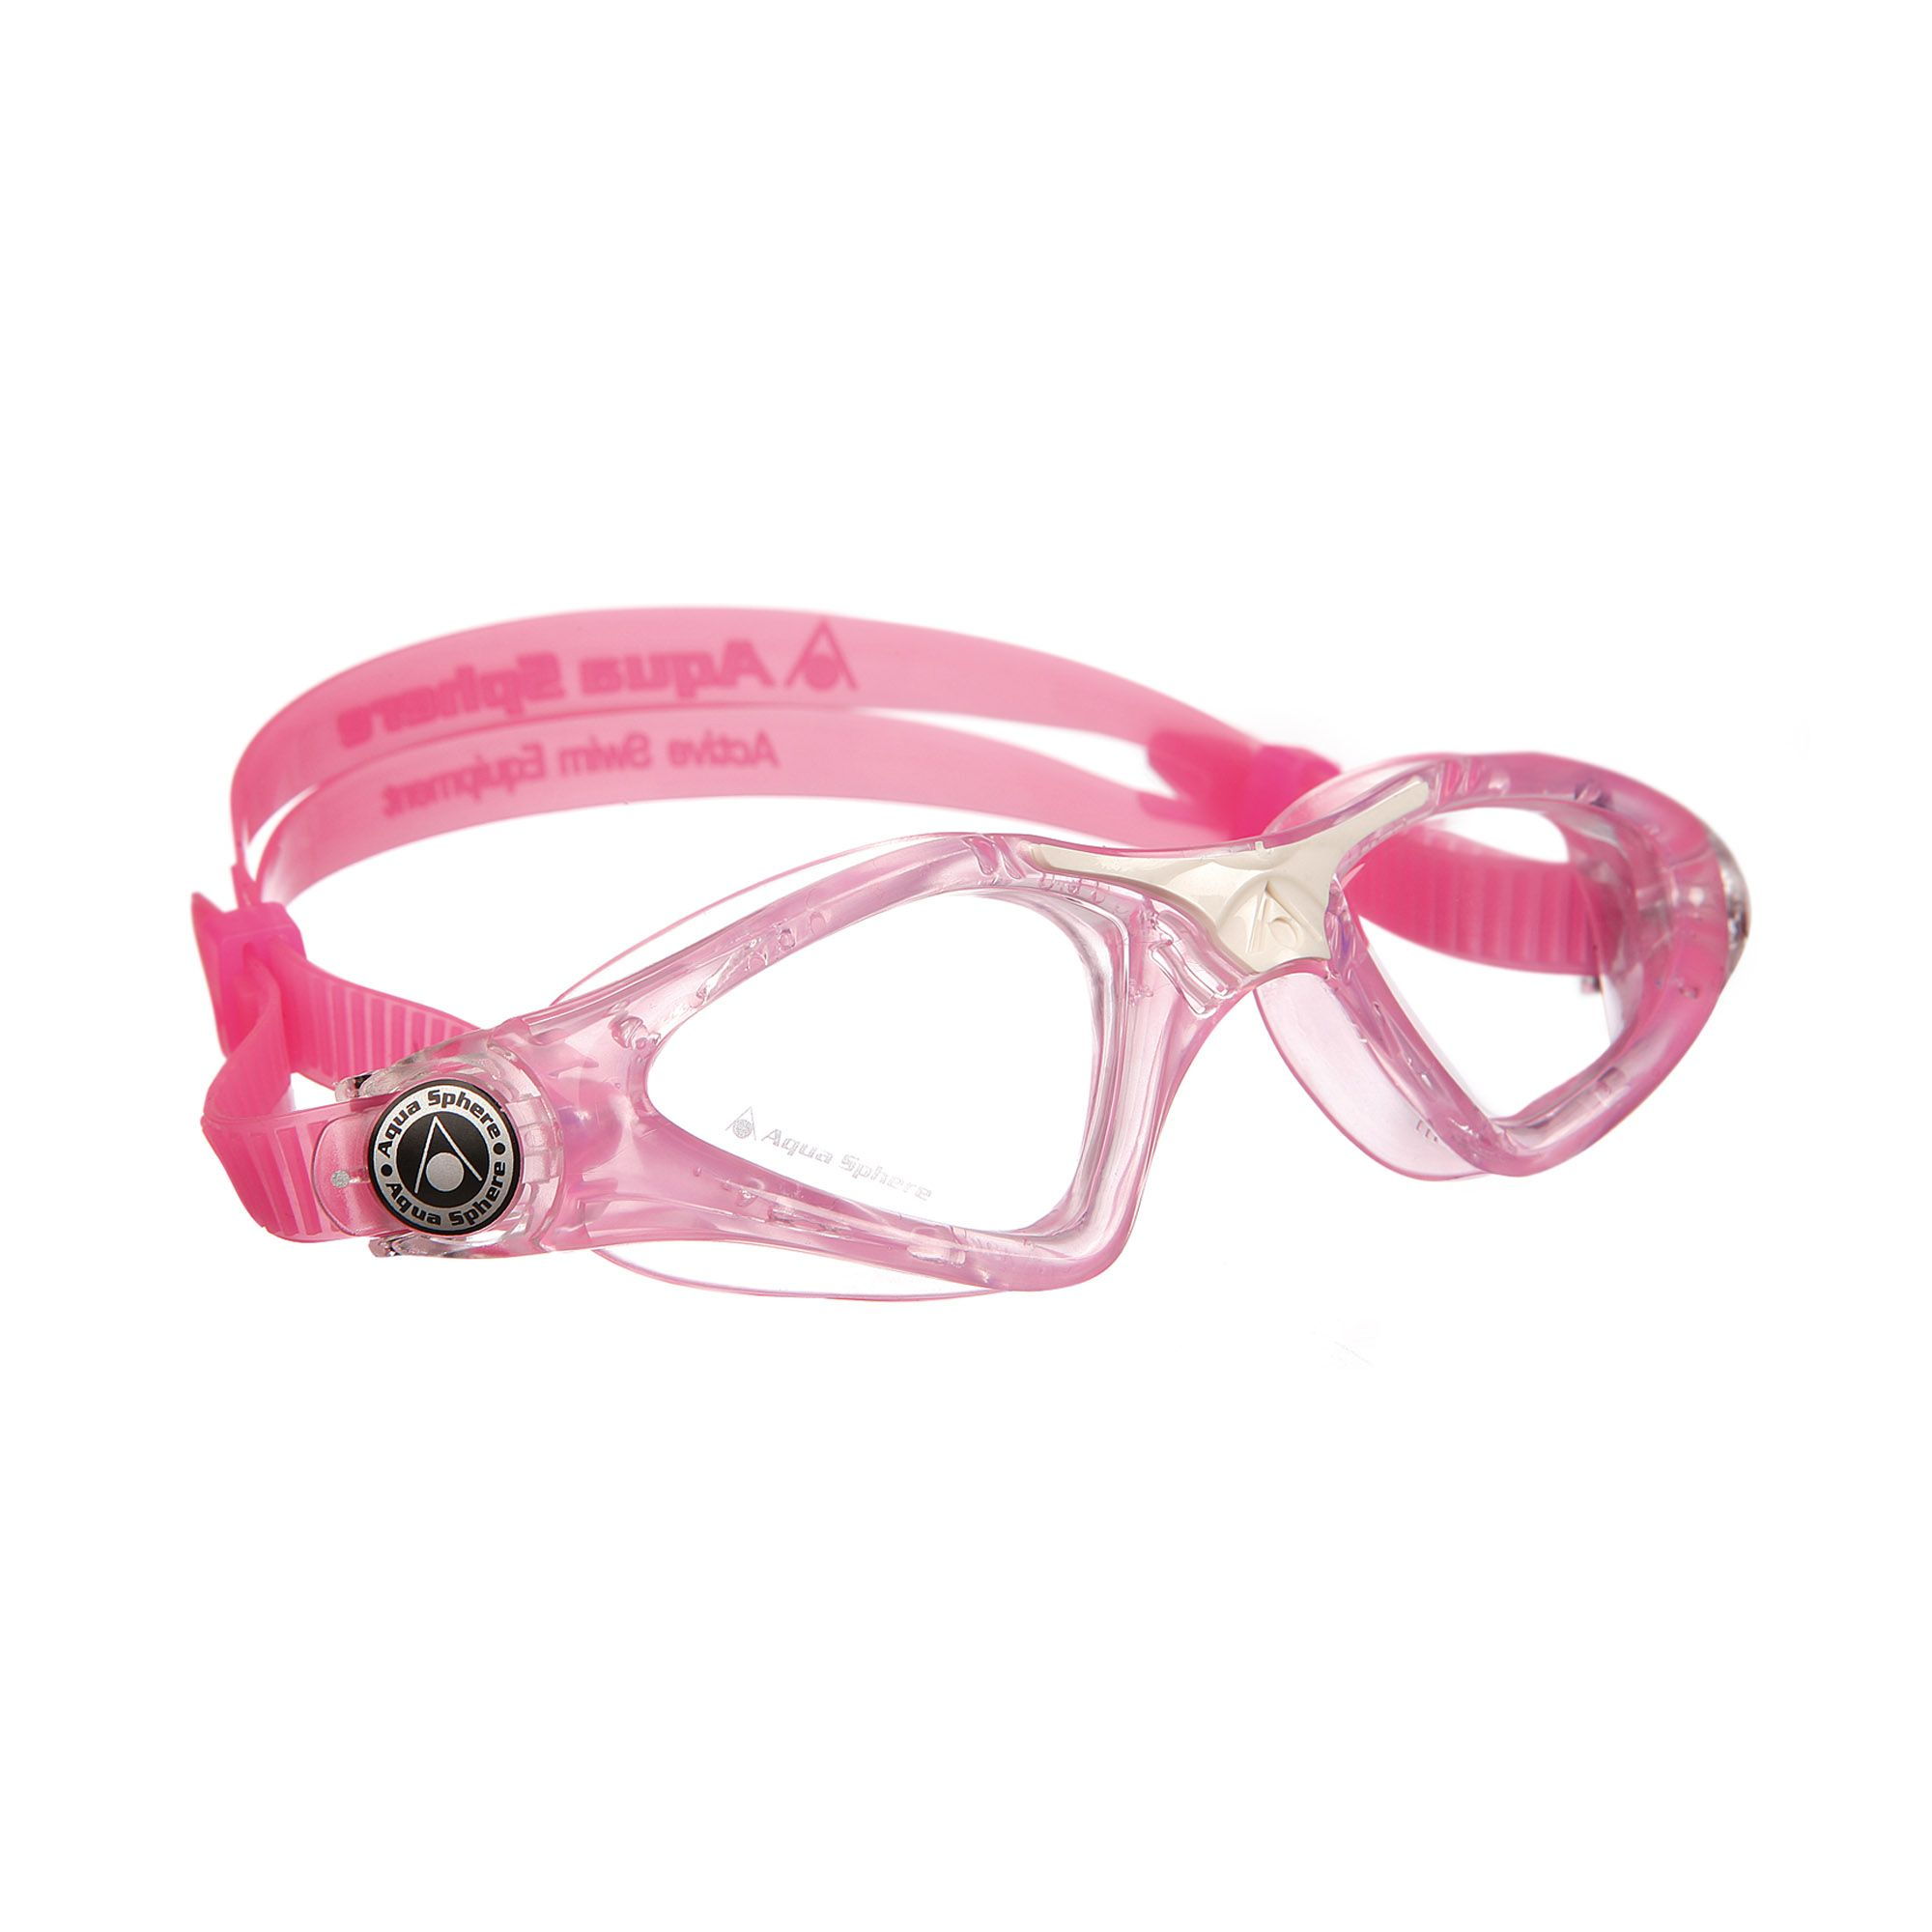 Decathlon Occhialini Piscina Aqua Sphere Kayenne Junior Goggles With Clear Lens